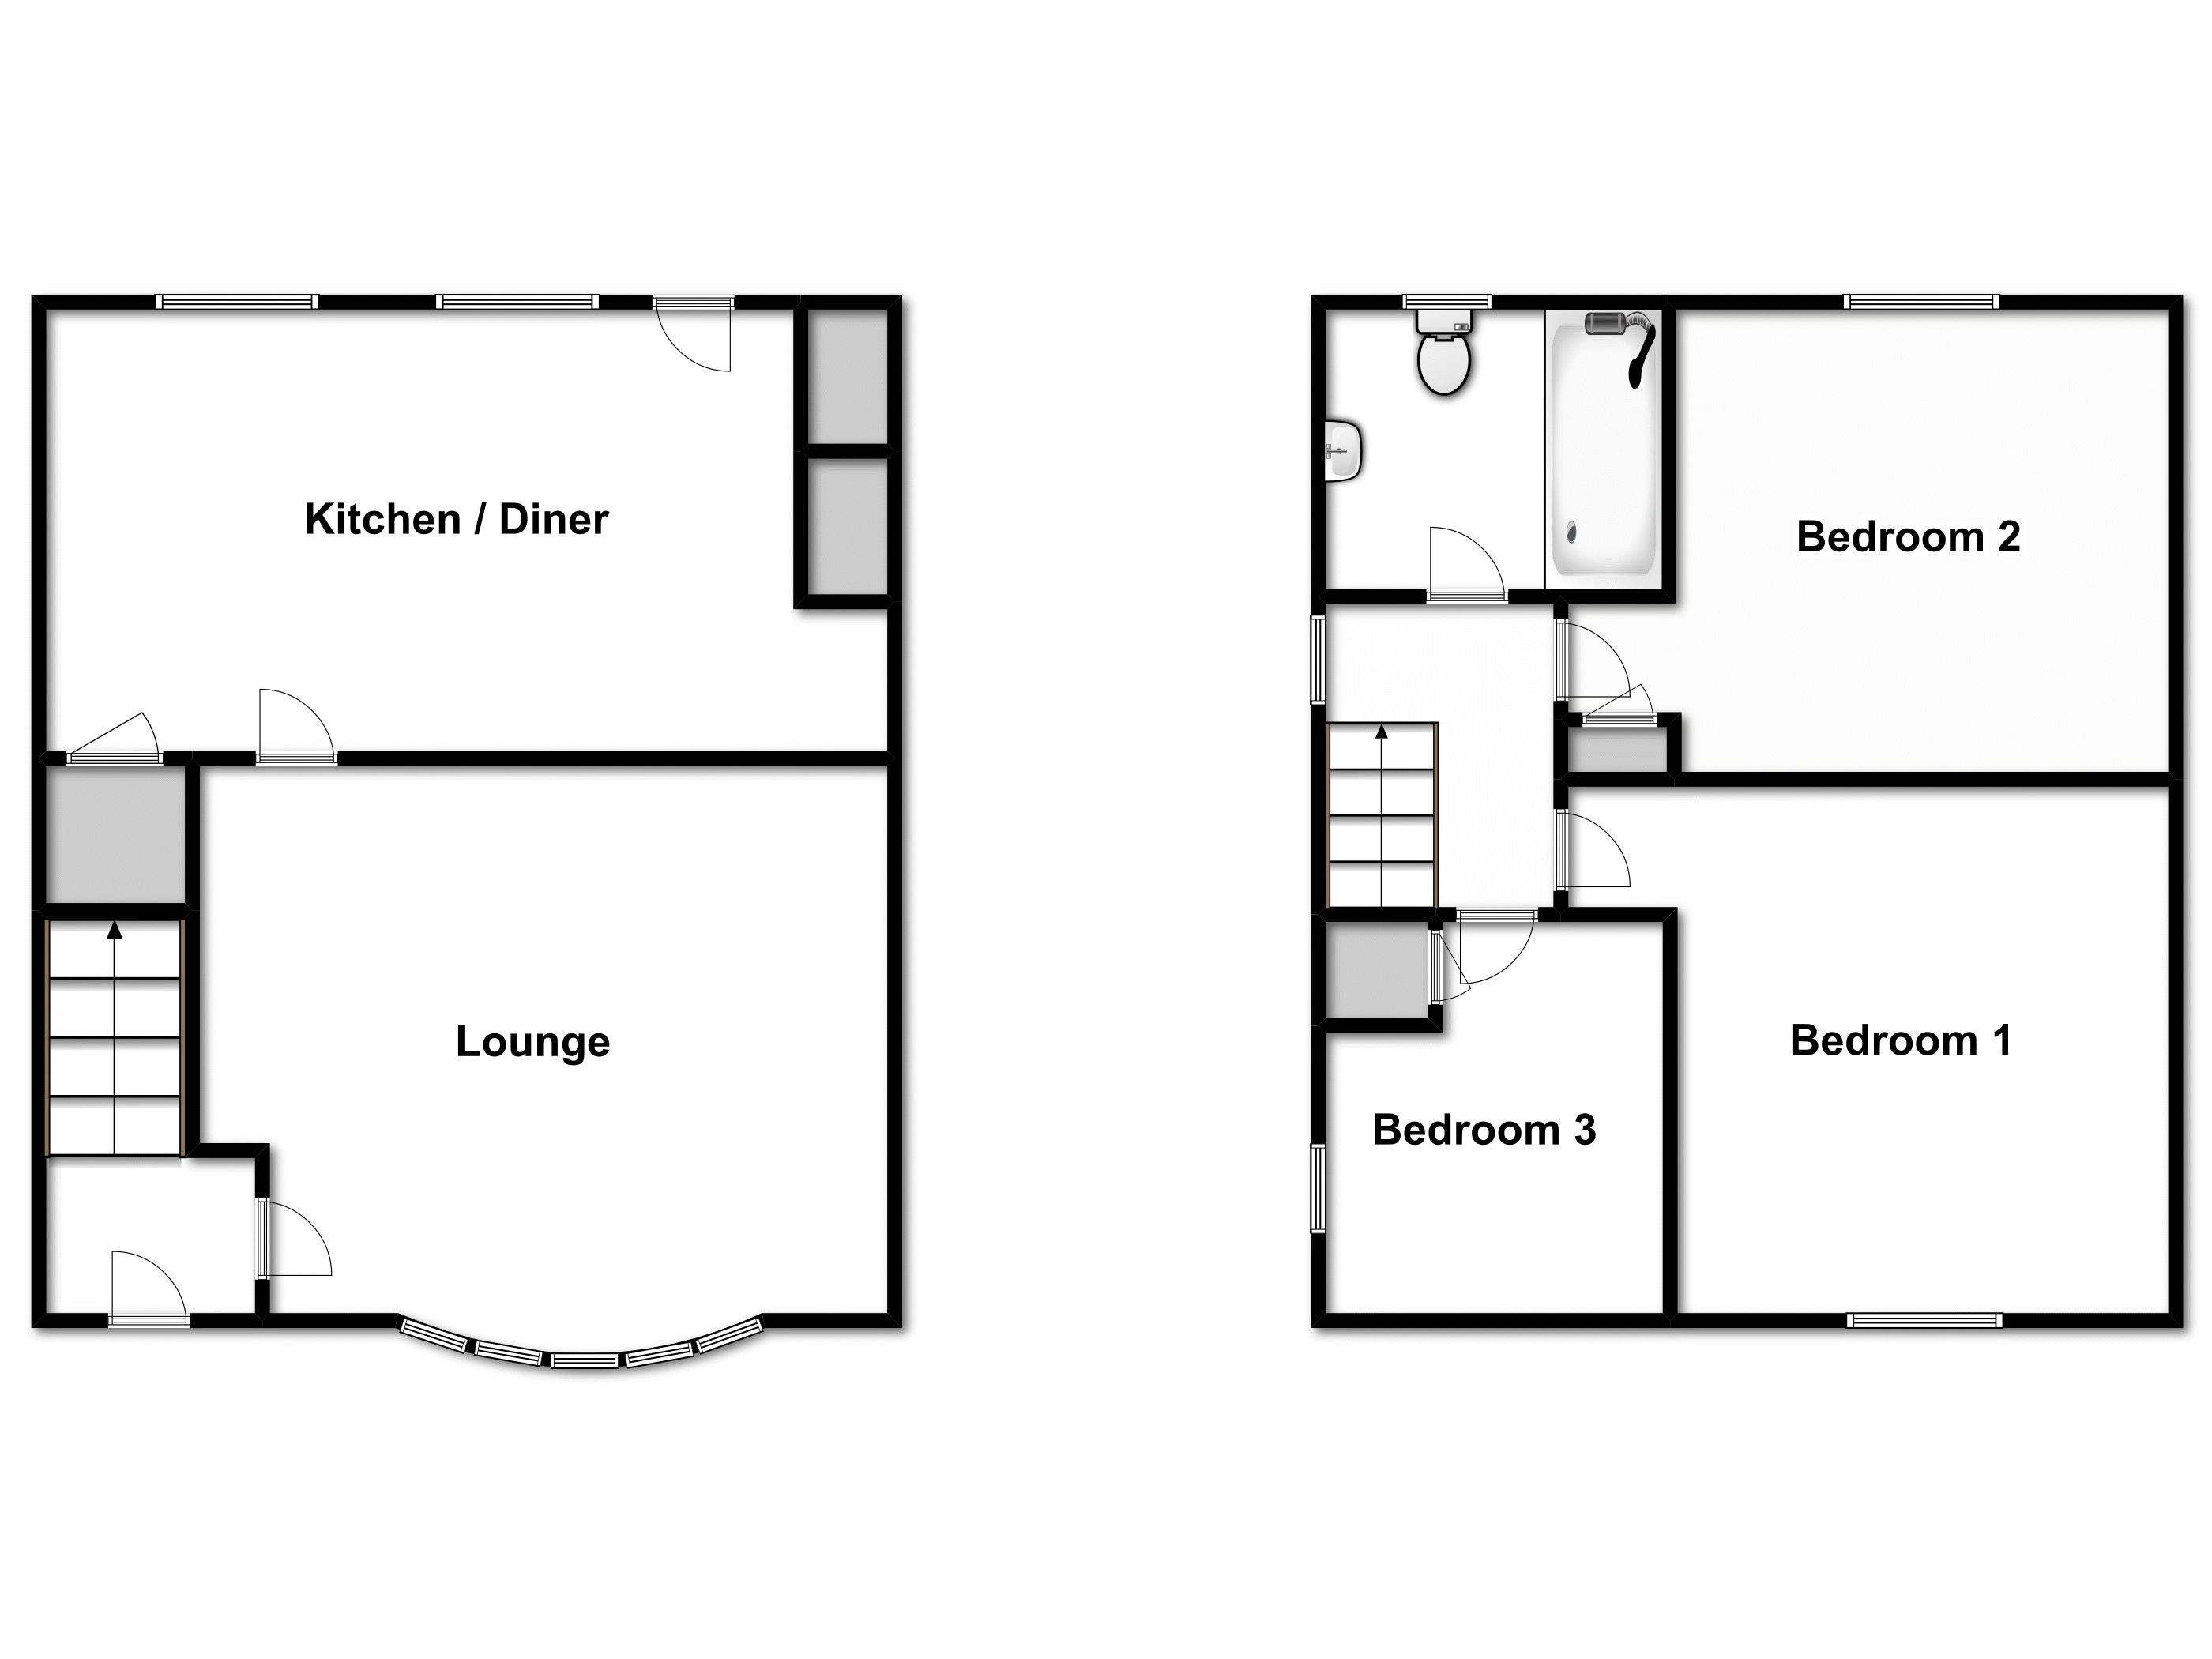 Heybridge Road, Ingatestone, Essex floor plan